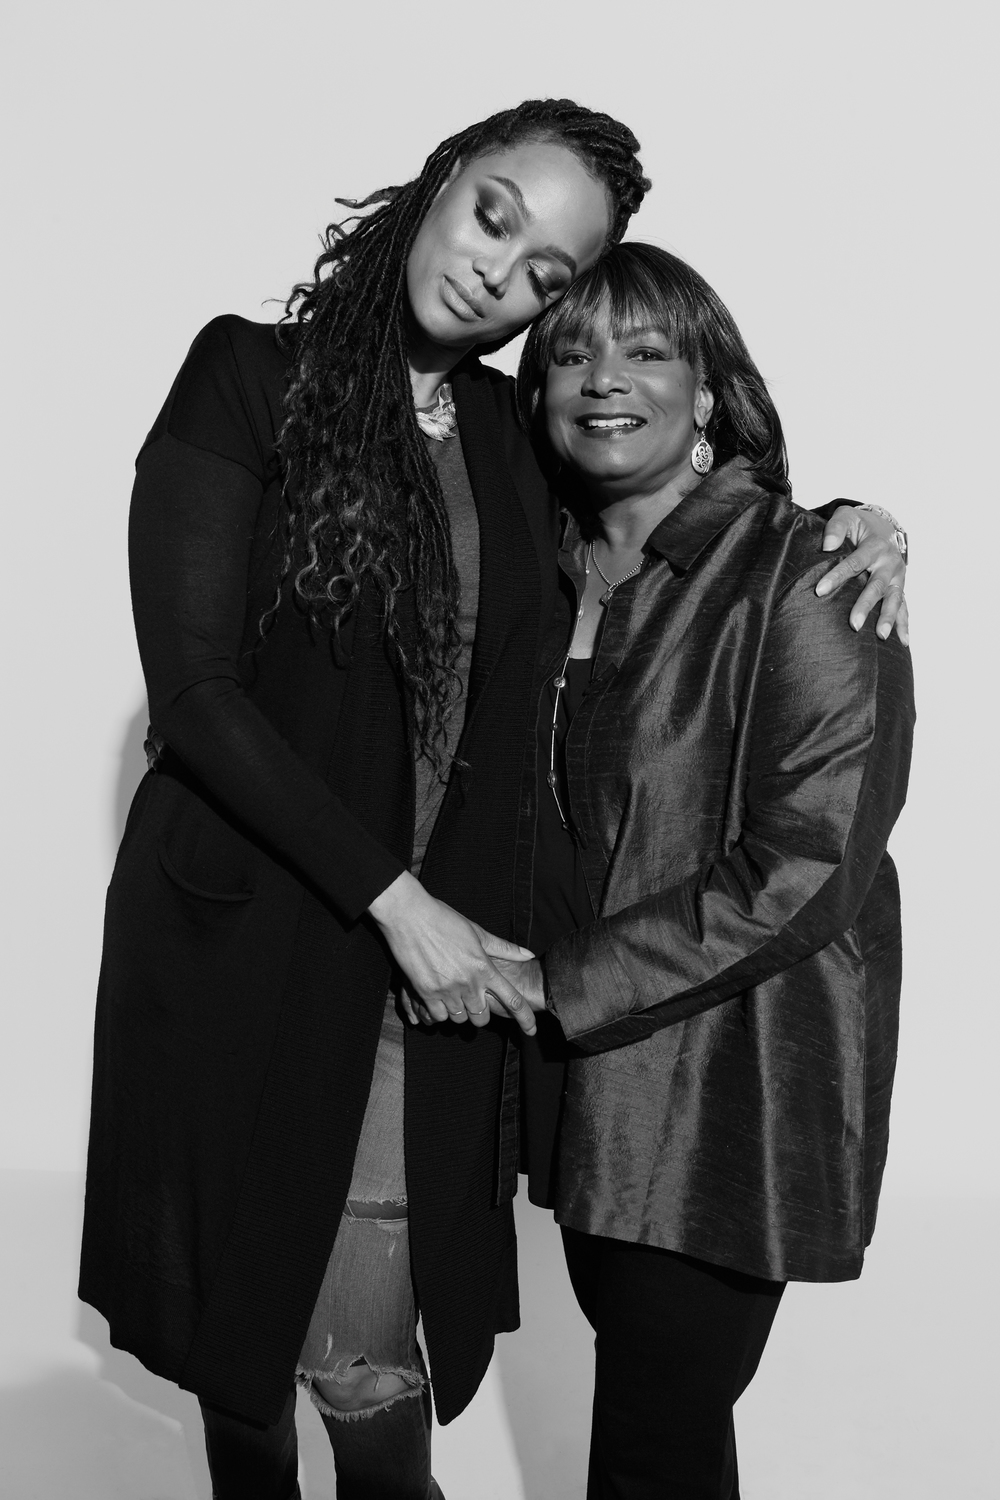 Tyra Banks and her mom photographed by Kate Owen black and white portrait #powertrip Marie Claire Magazine portraits of power